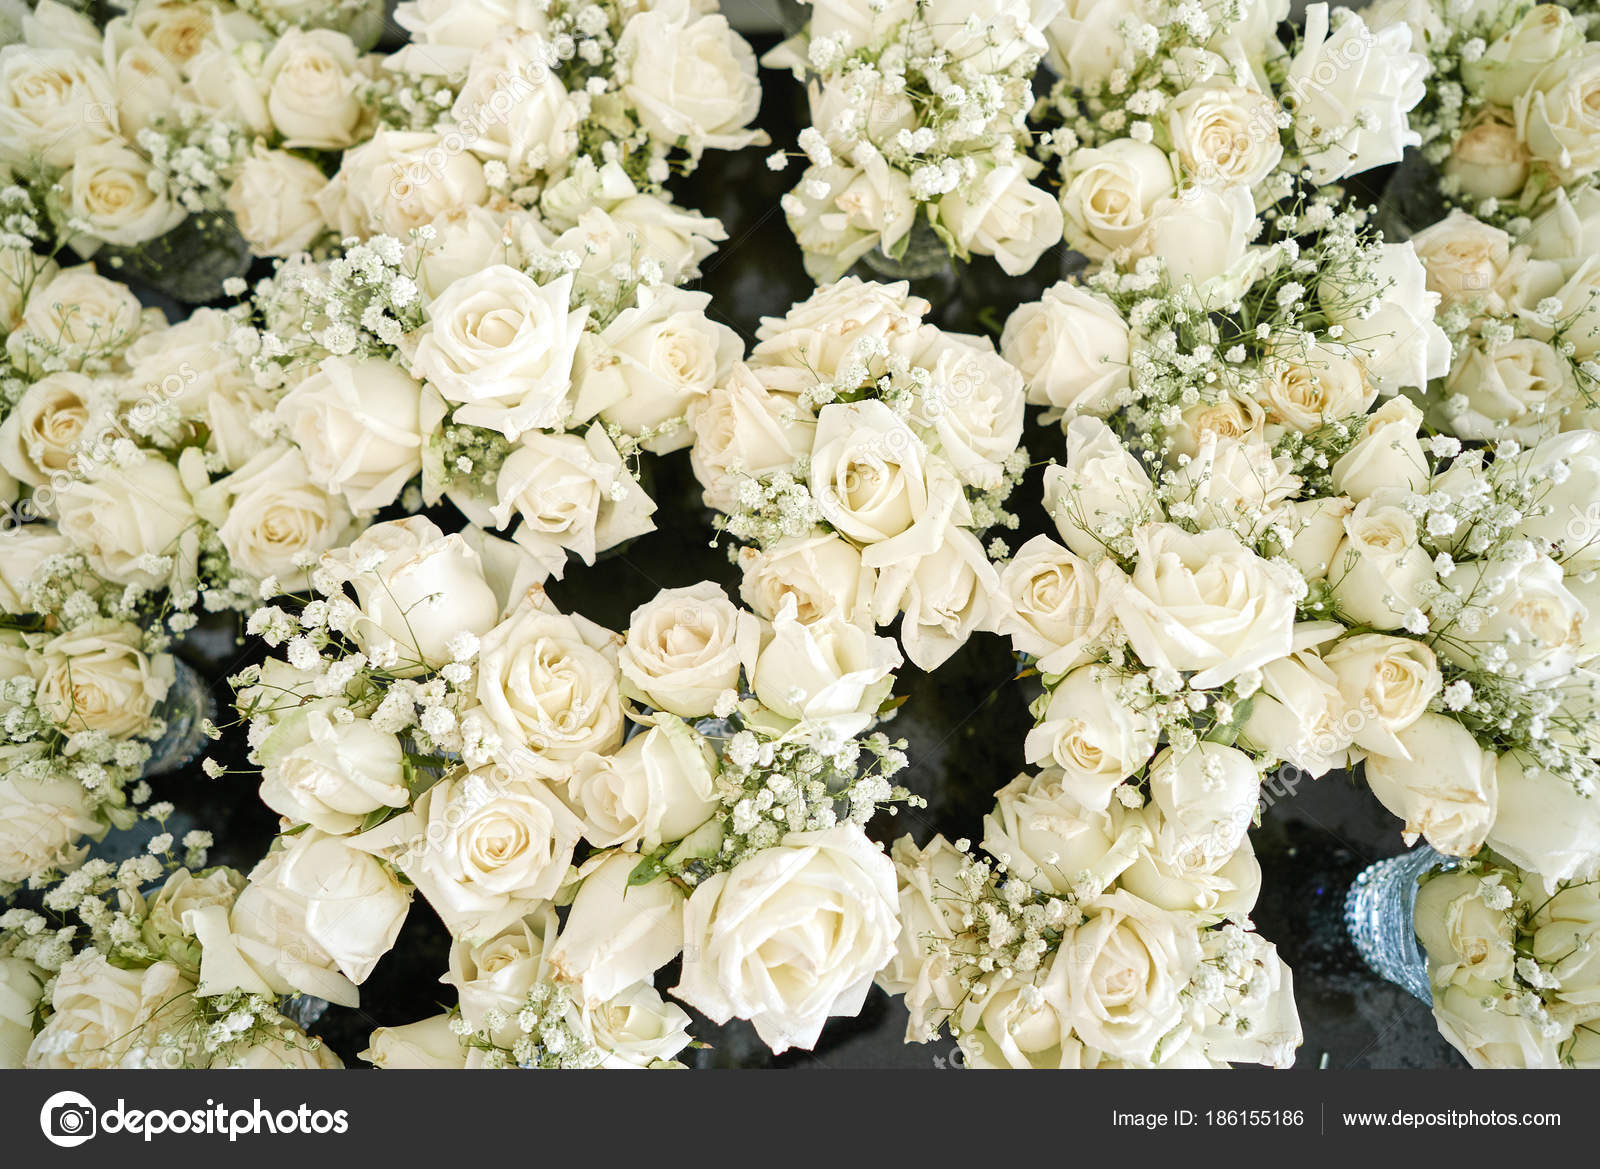 Bunch white cream roses baby breath gypsophila flowers floral a bunch of white and cream roses the babys breath gypsophila flowers floral for wedding venue decoration top view photo by mrseksan mightylinksfo